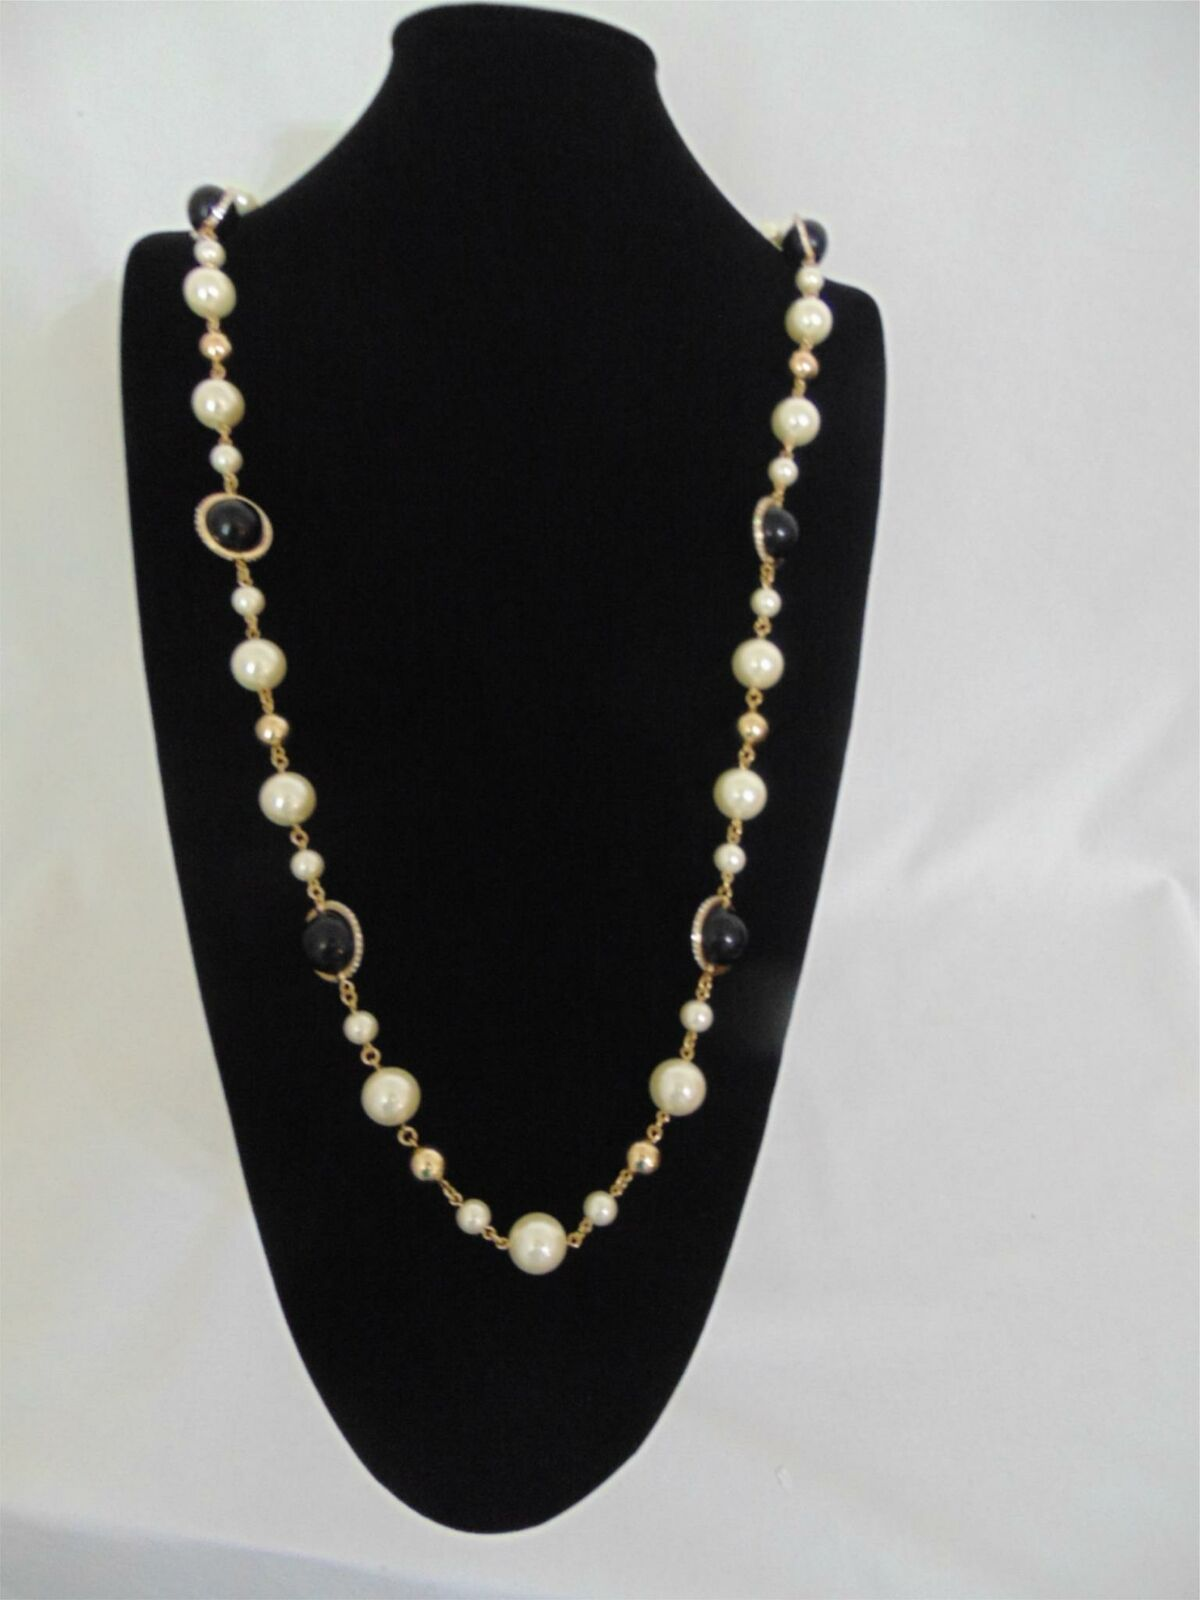 UPC 636206336591 product image for Charter Club Gold-tone Kiska Pearl & Pave Bead Strand Long Necklace L752 $49 | upcitemdb.com